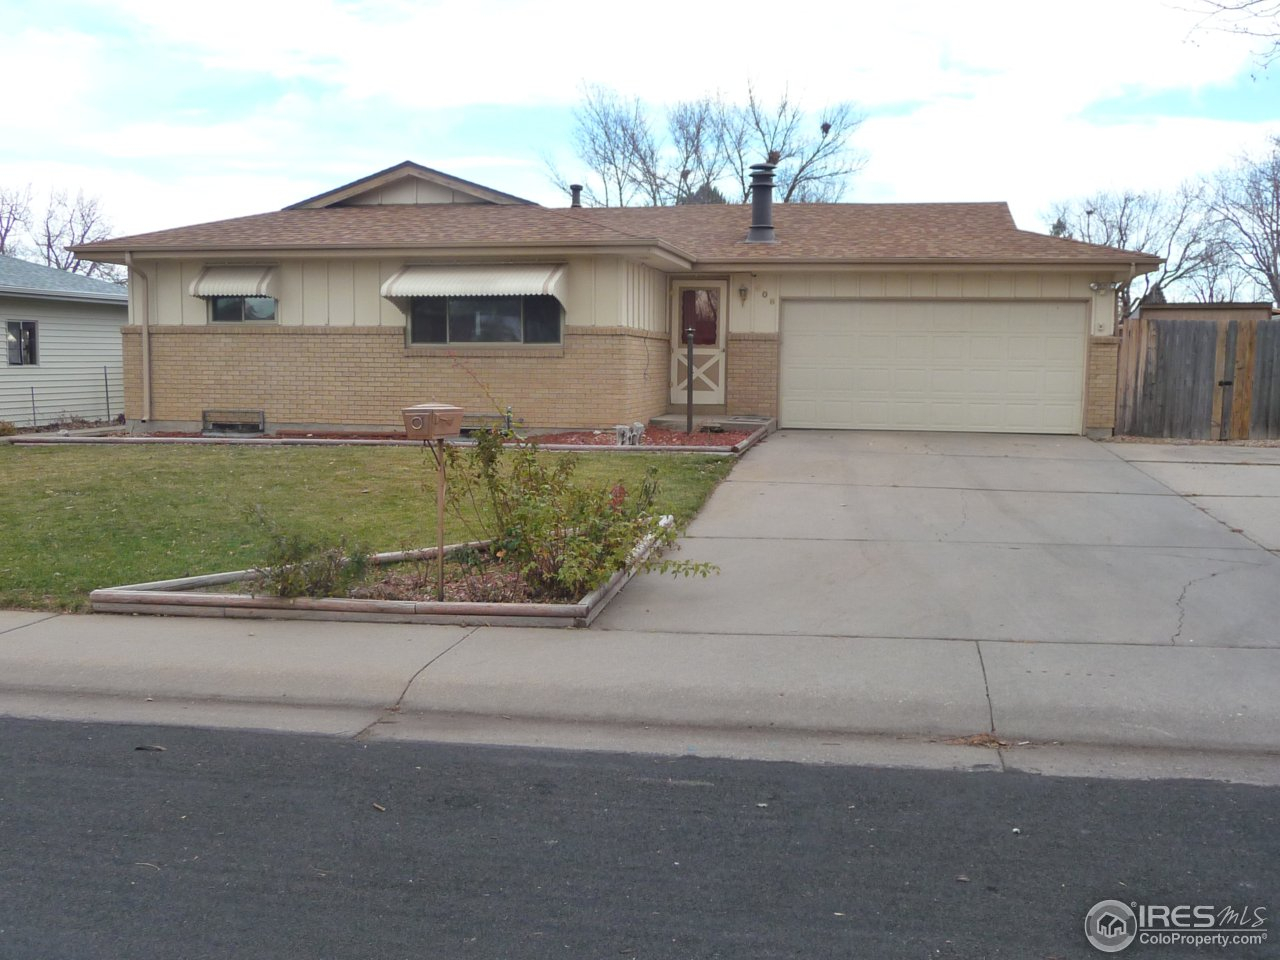 608 37th Ave, Greeley CO 80634